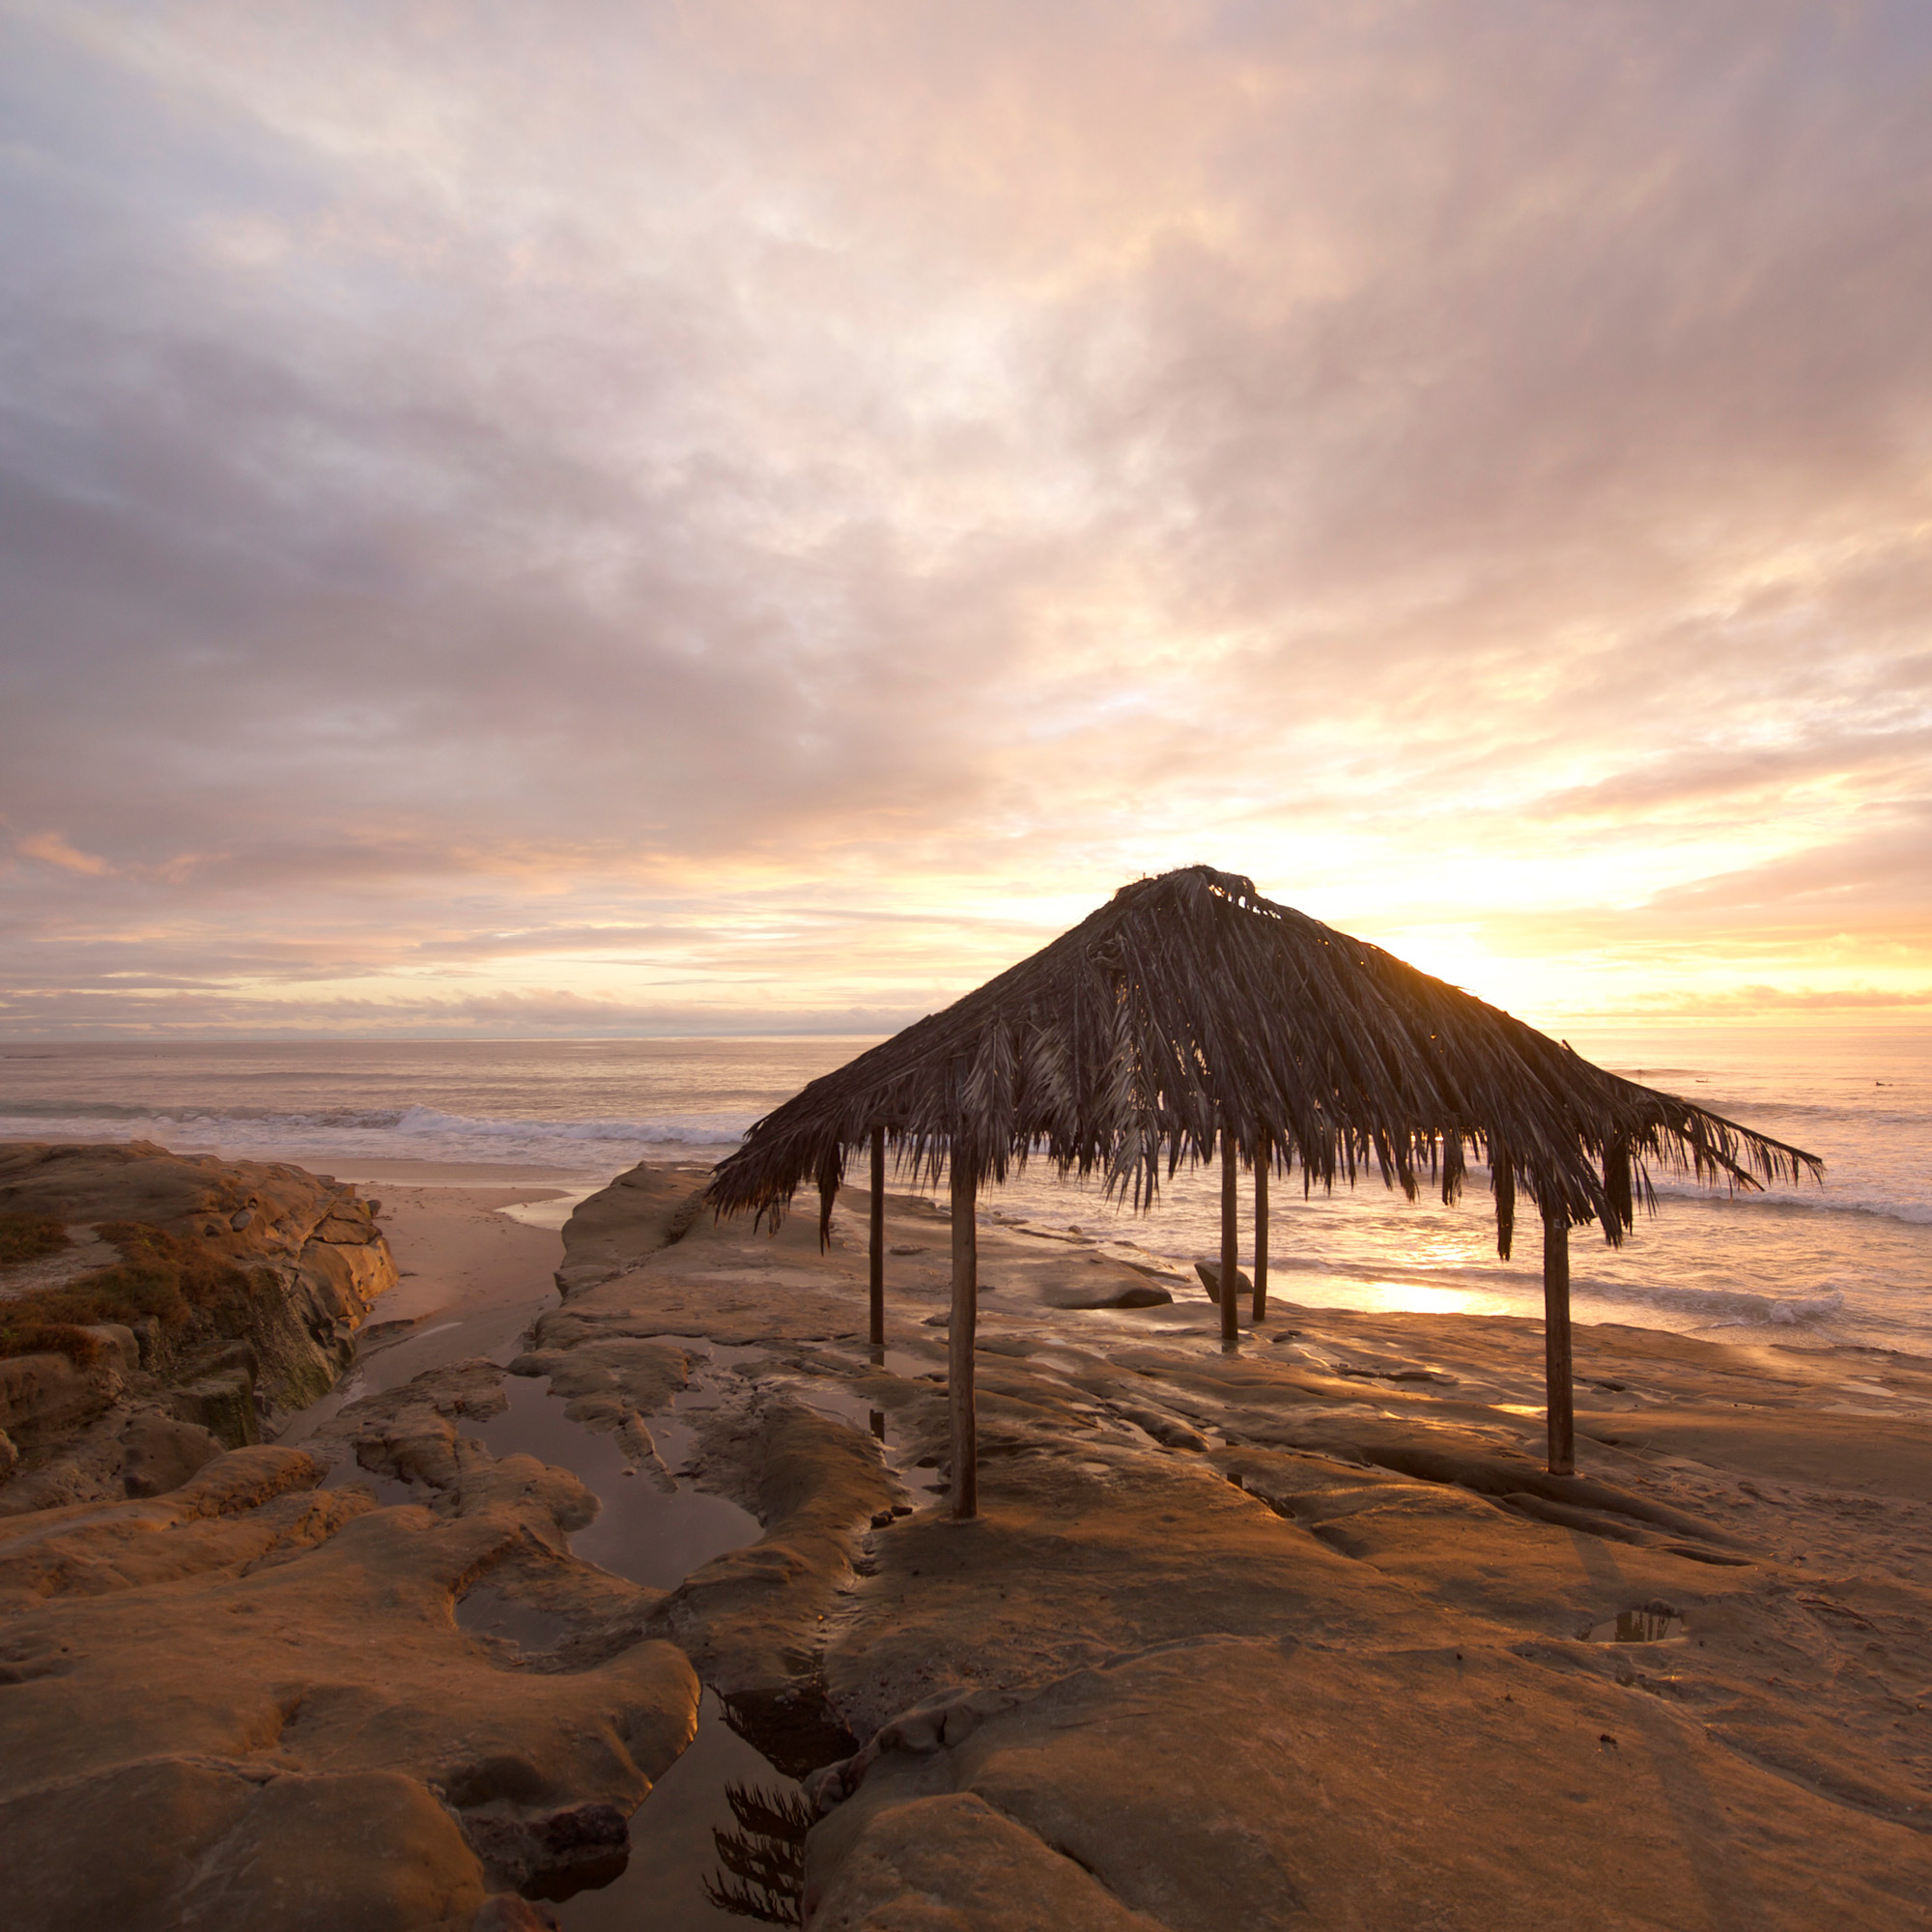 Frankie Foto » Top 5 Places To Take Stunning Sunset